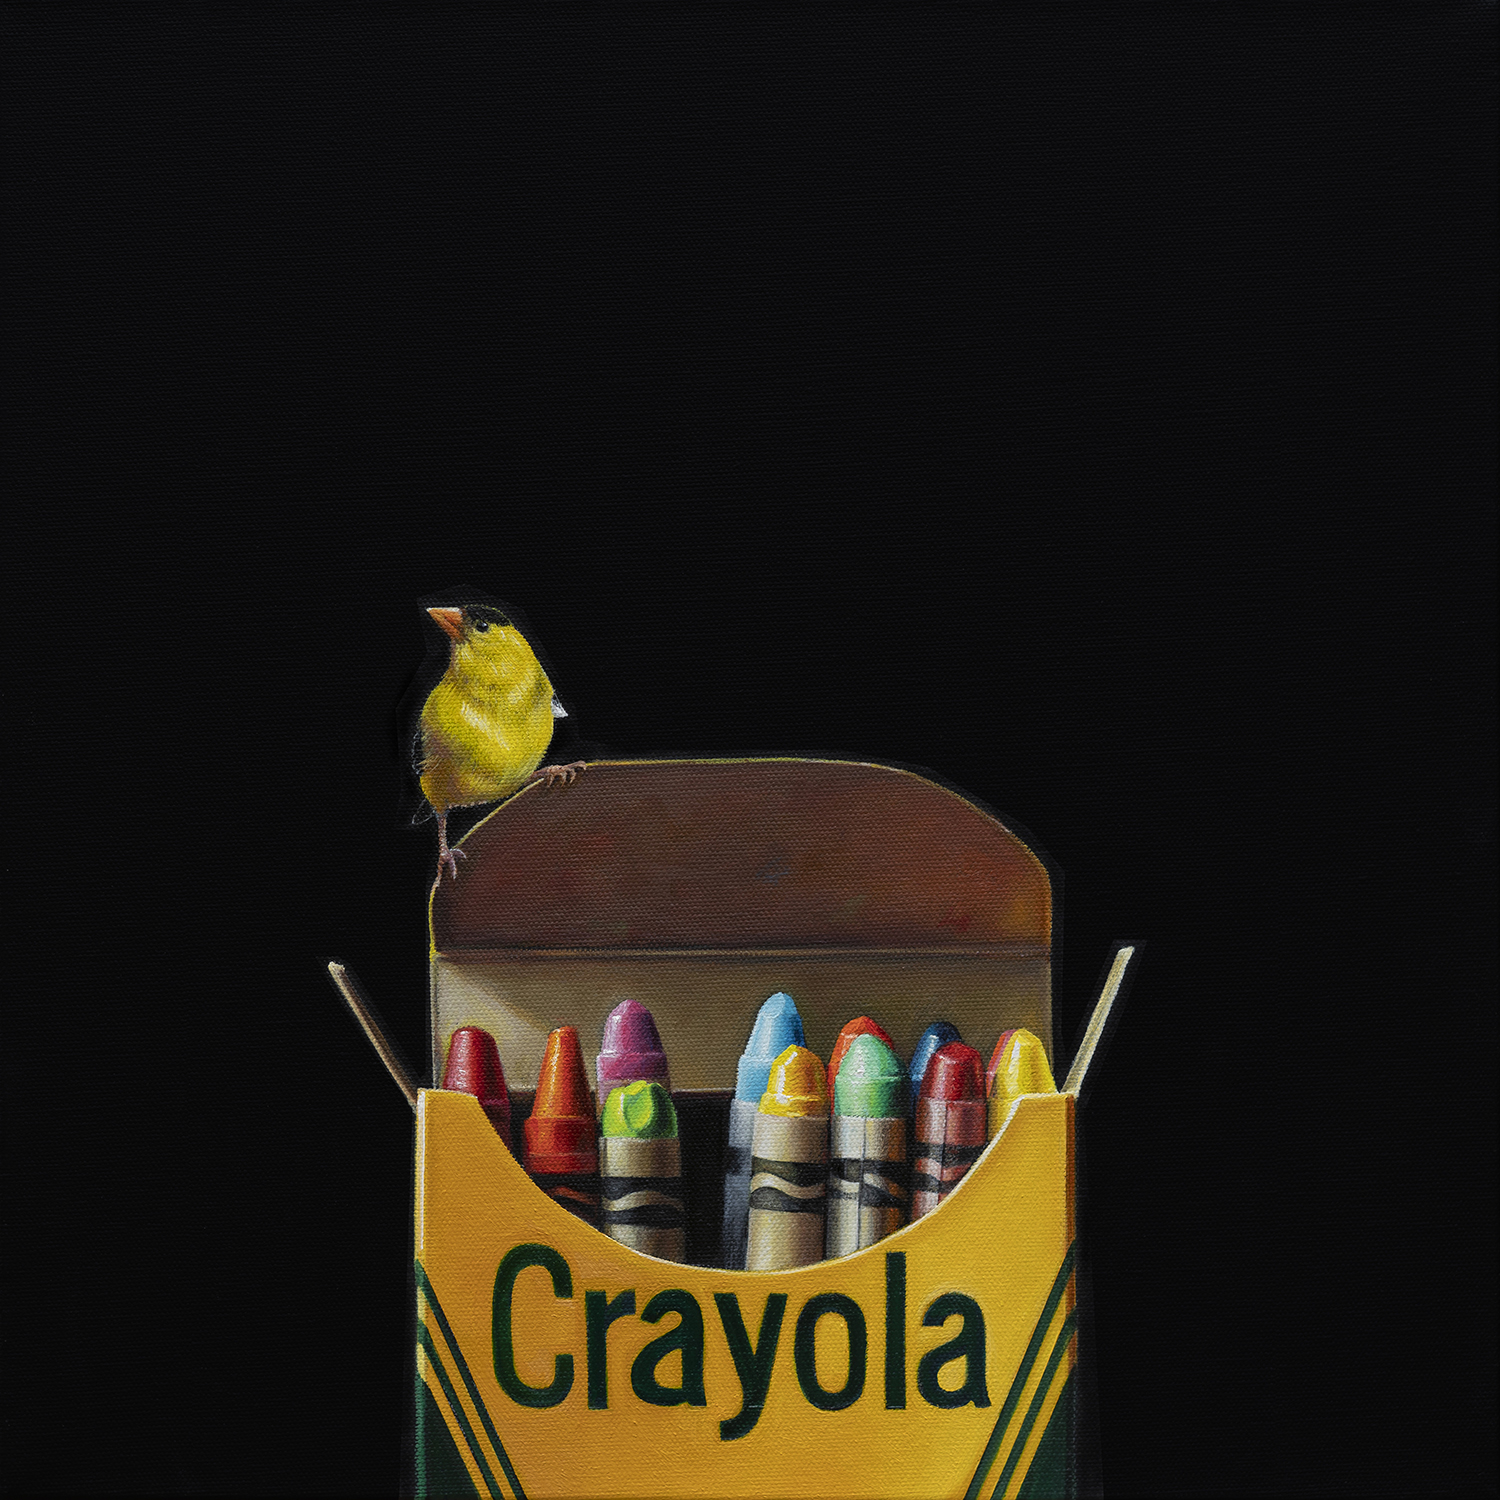 Crayola with Goldfinch | 16 x 16 | Oil on canvas